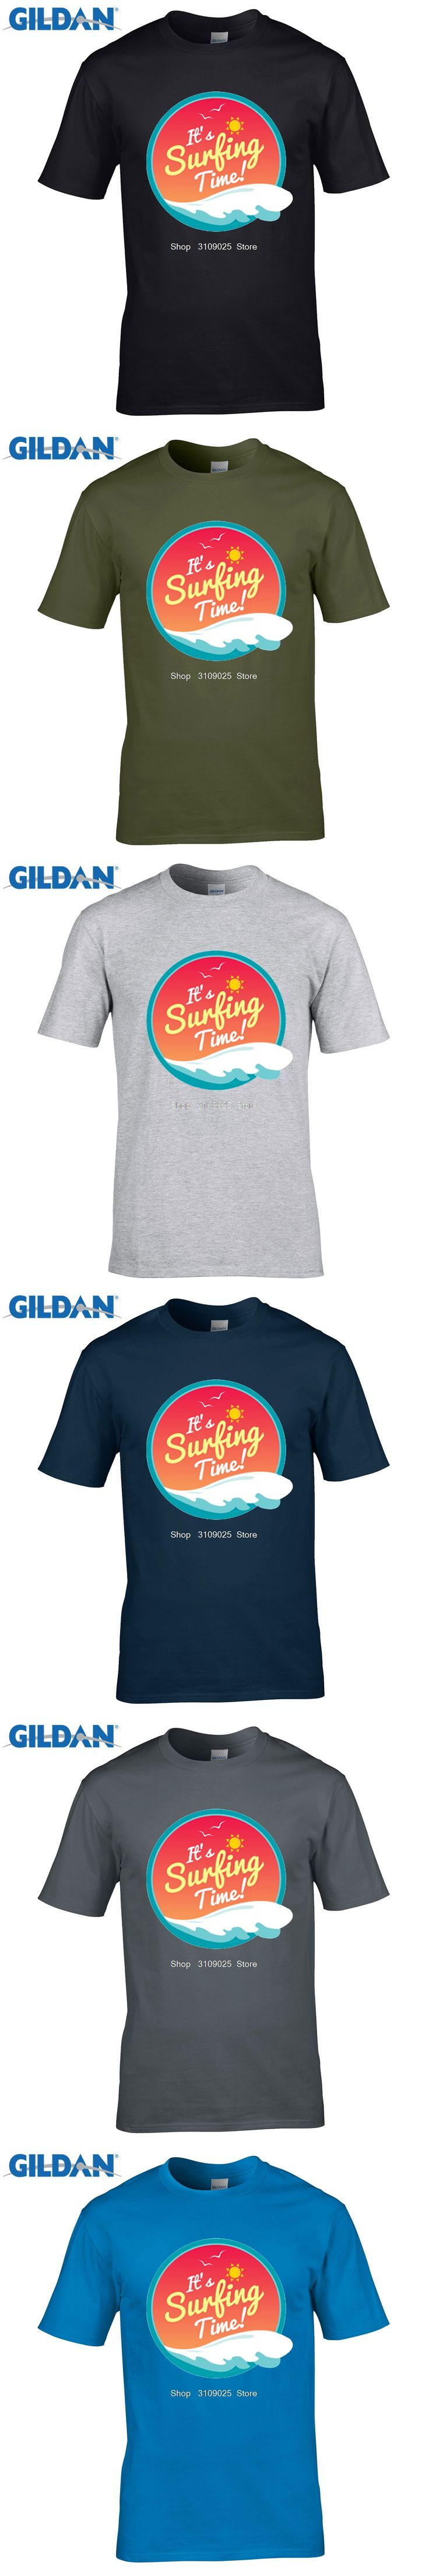 GILDAN customised t-shirts Summer Holiday   Short Sleeve Clothes Sunshine  Tree T-shirts Surffing Trooper T Shirts